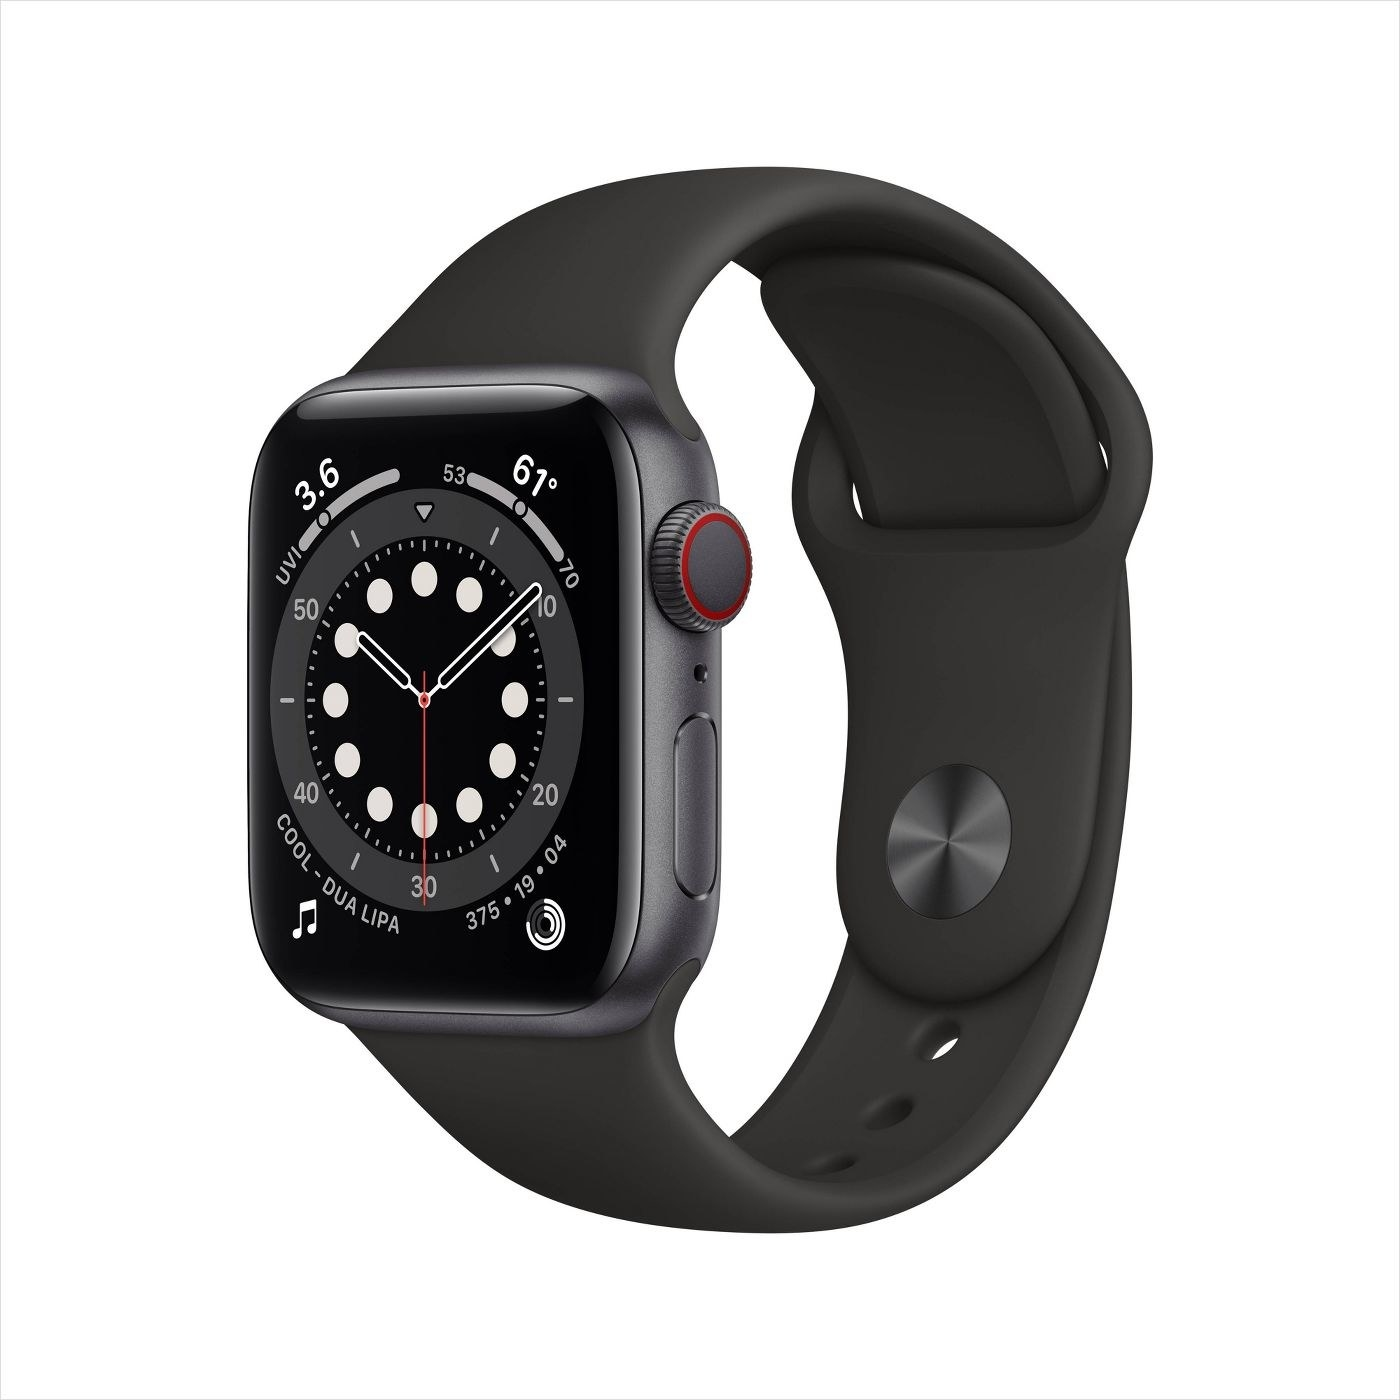 The space grey series 6 Apple watch